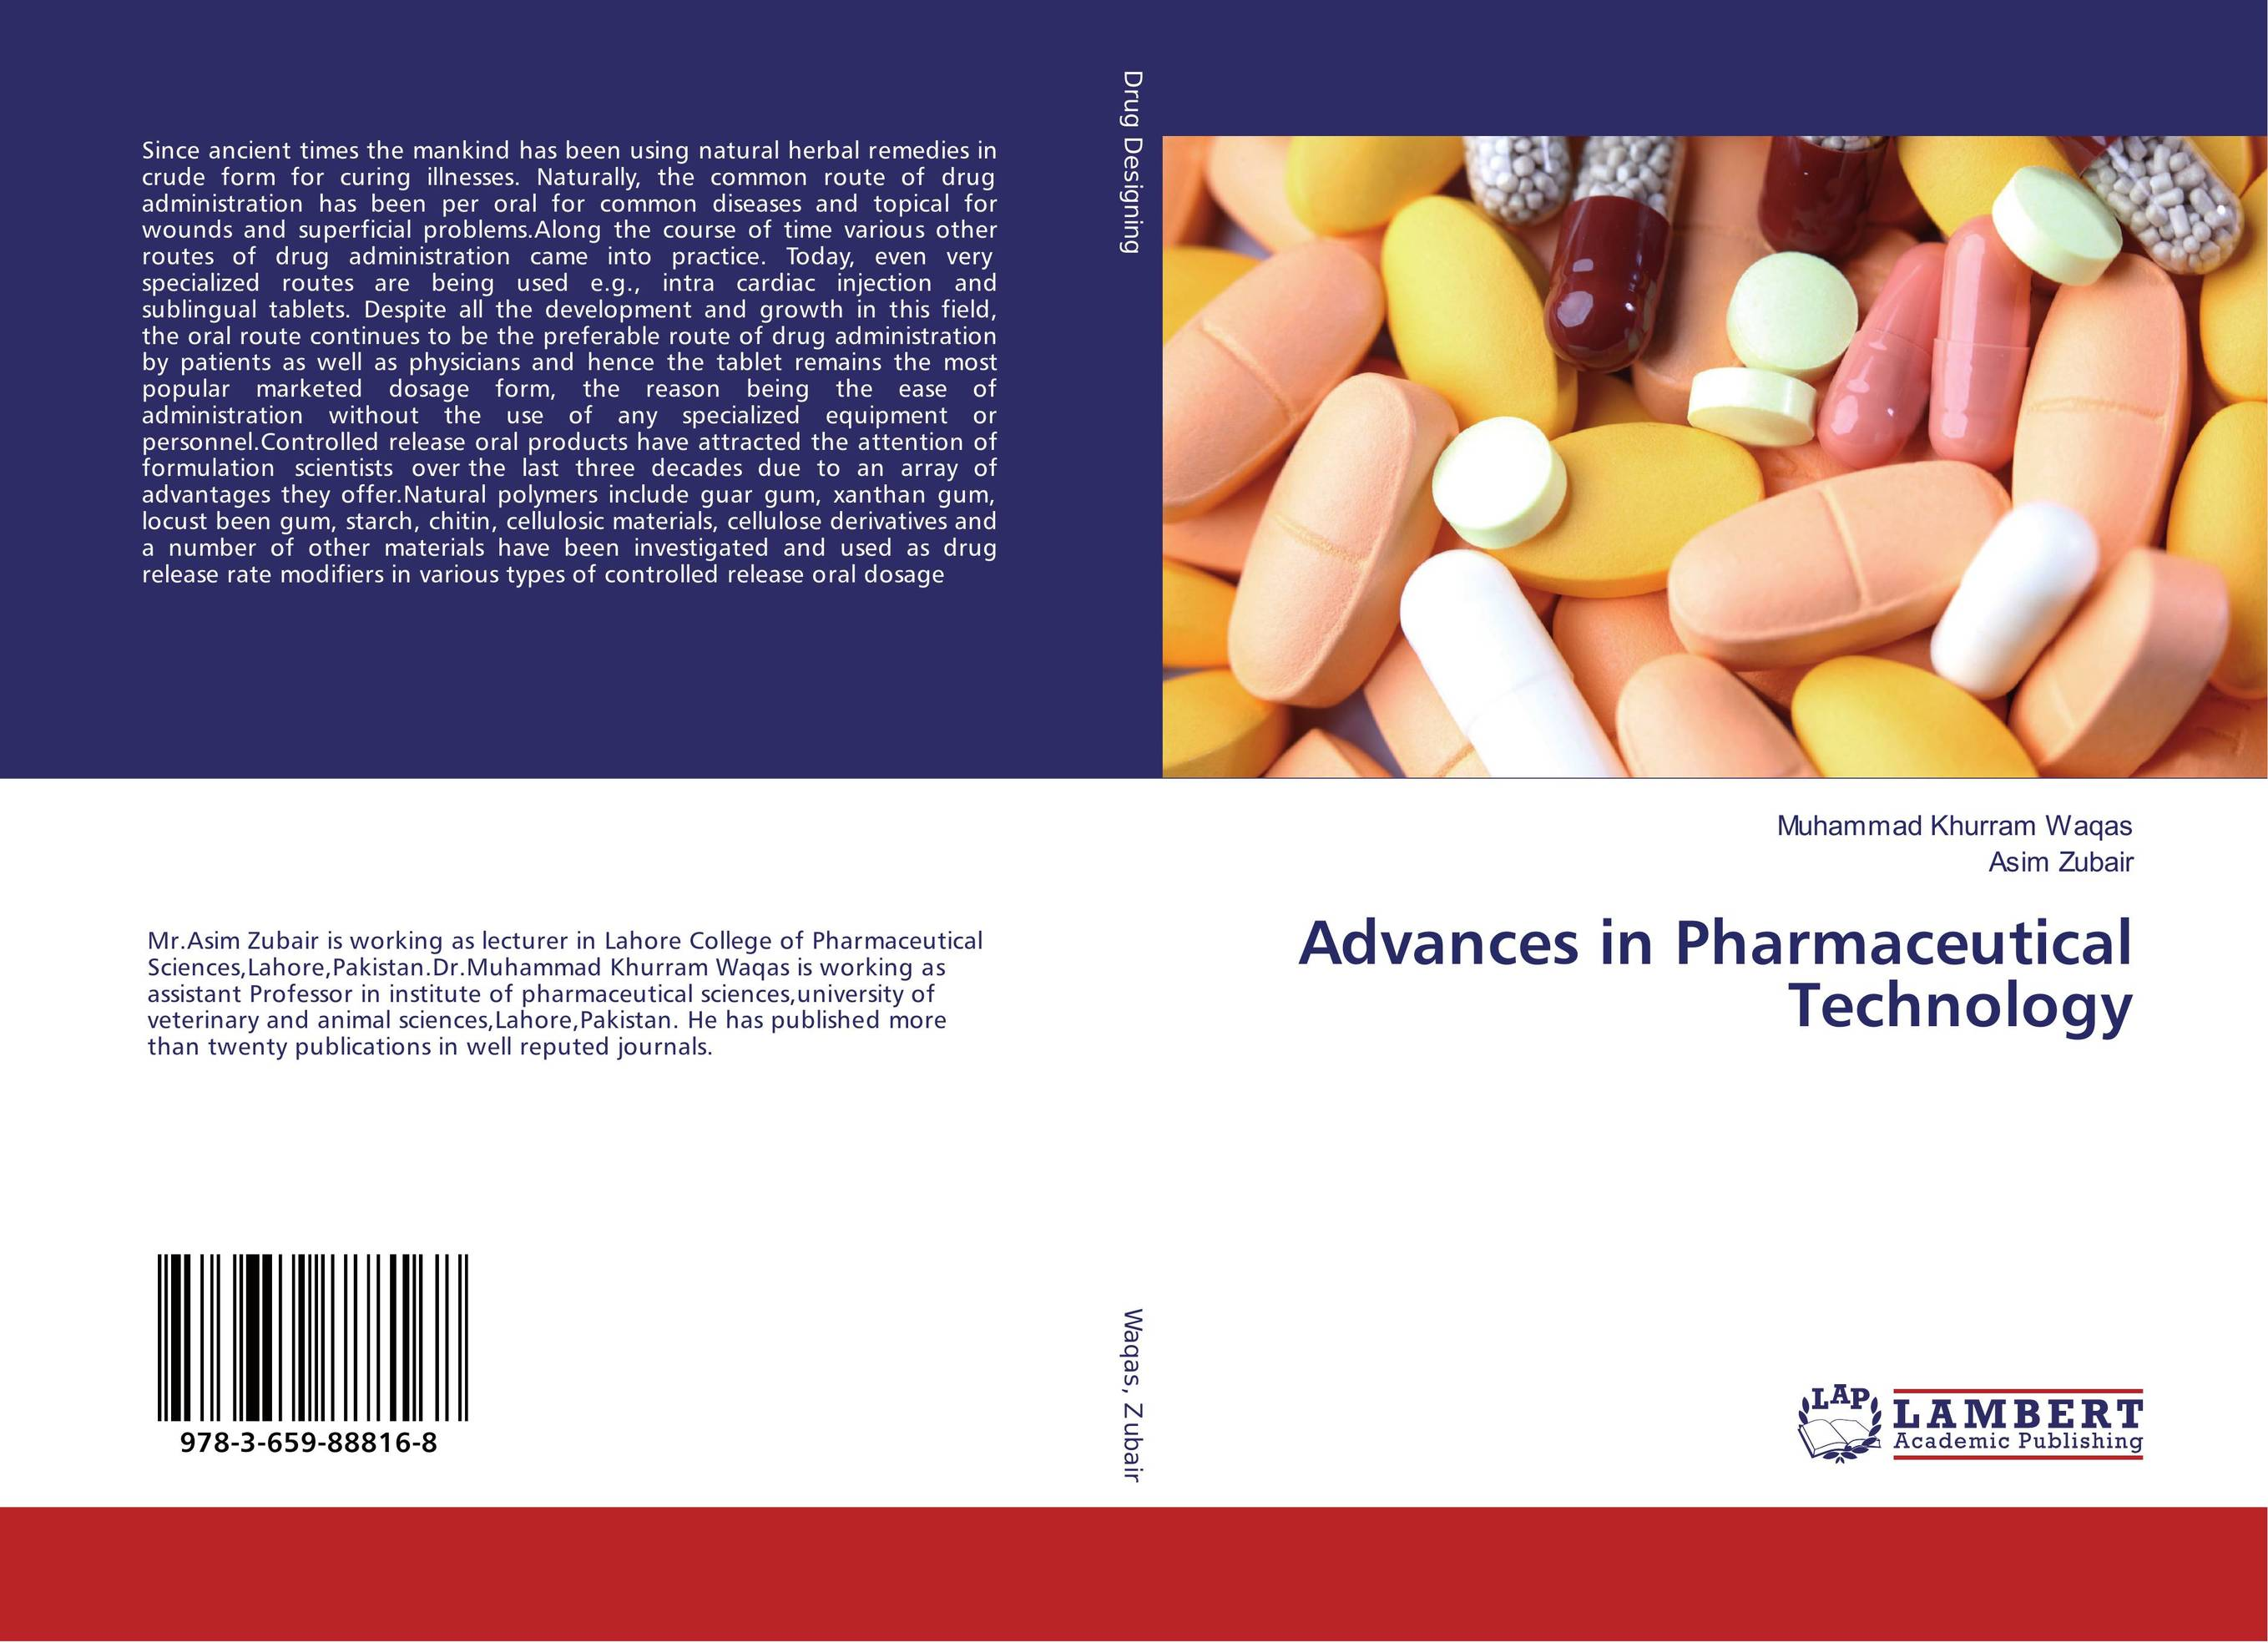 Advances in Pharmaceutical Technology